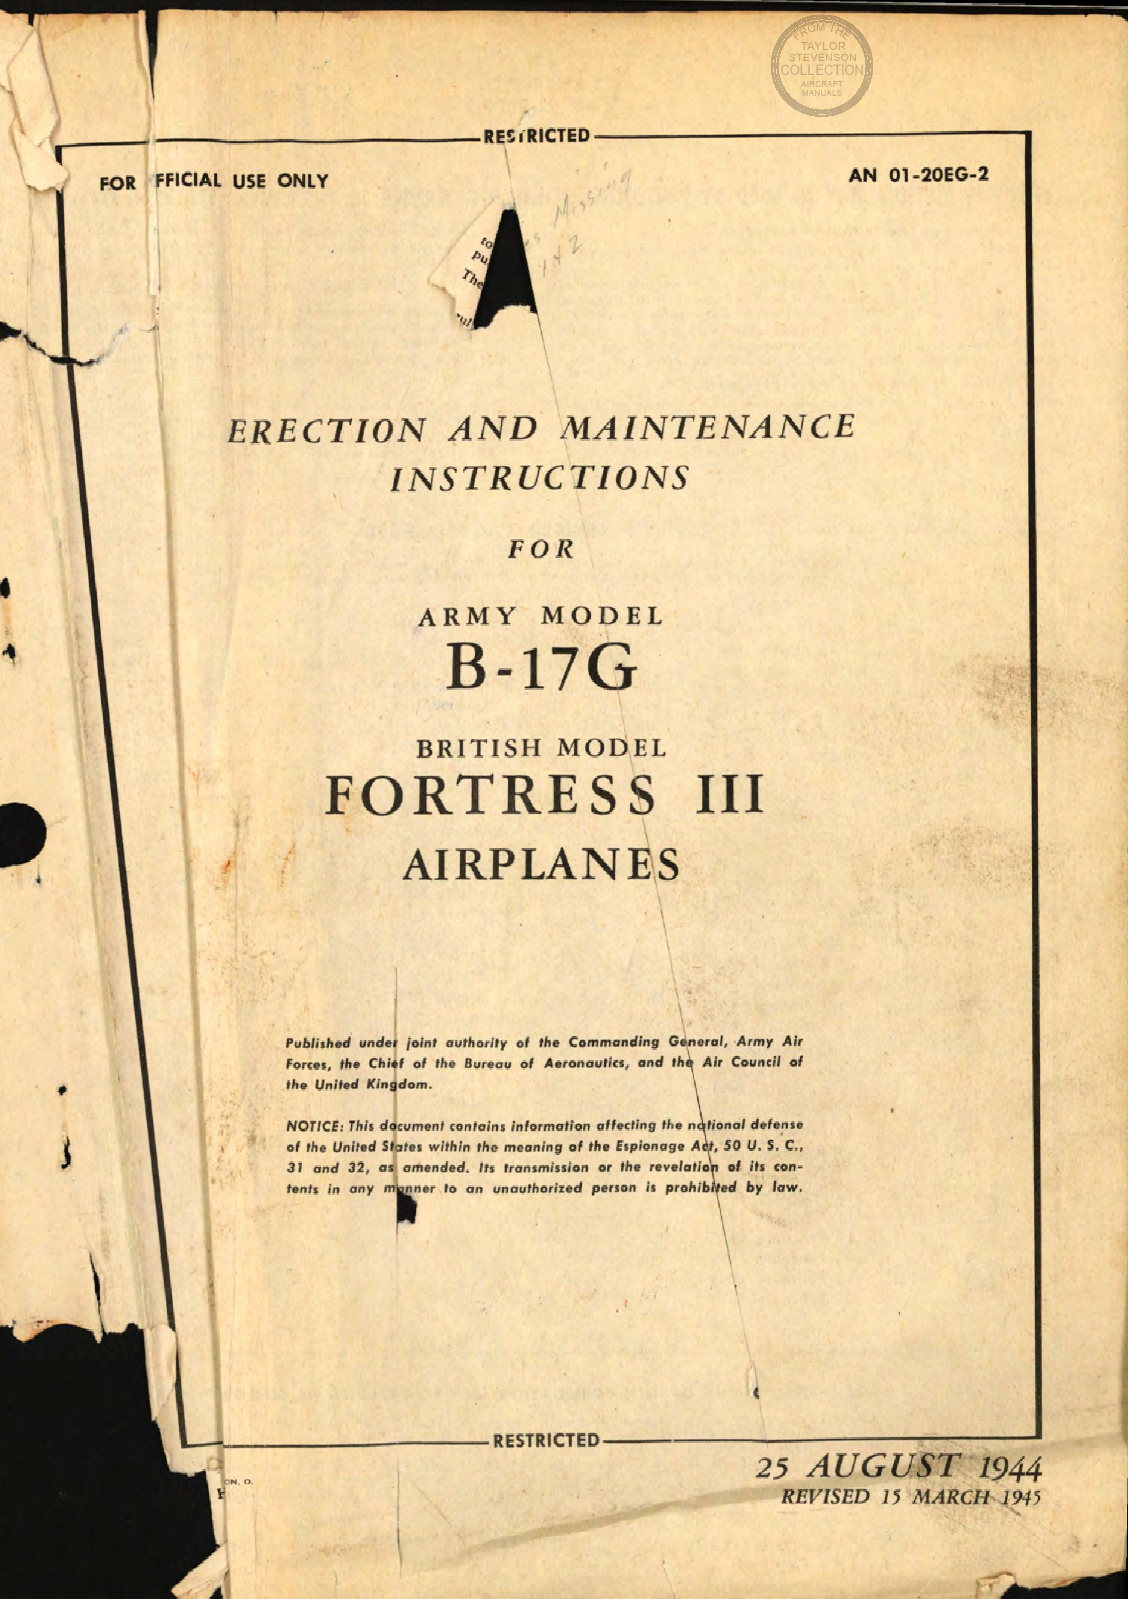 Sample page 1 from AirCorps Library document: Erection and Maintenance Instructions for B-17G (Fortress III) Airplanes